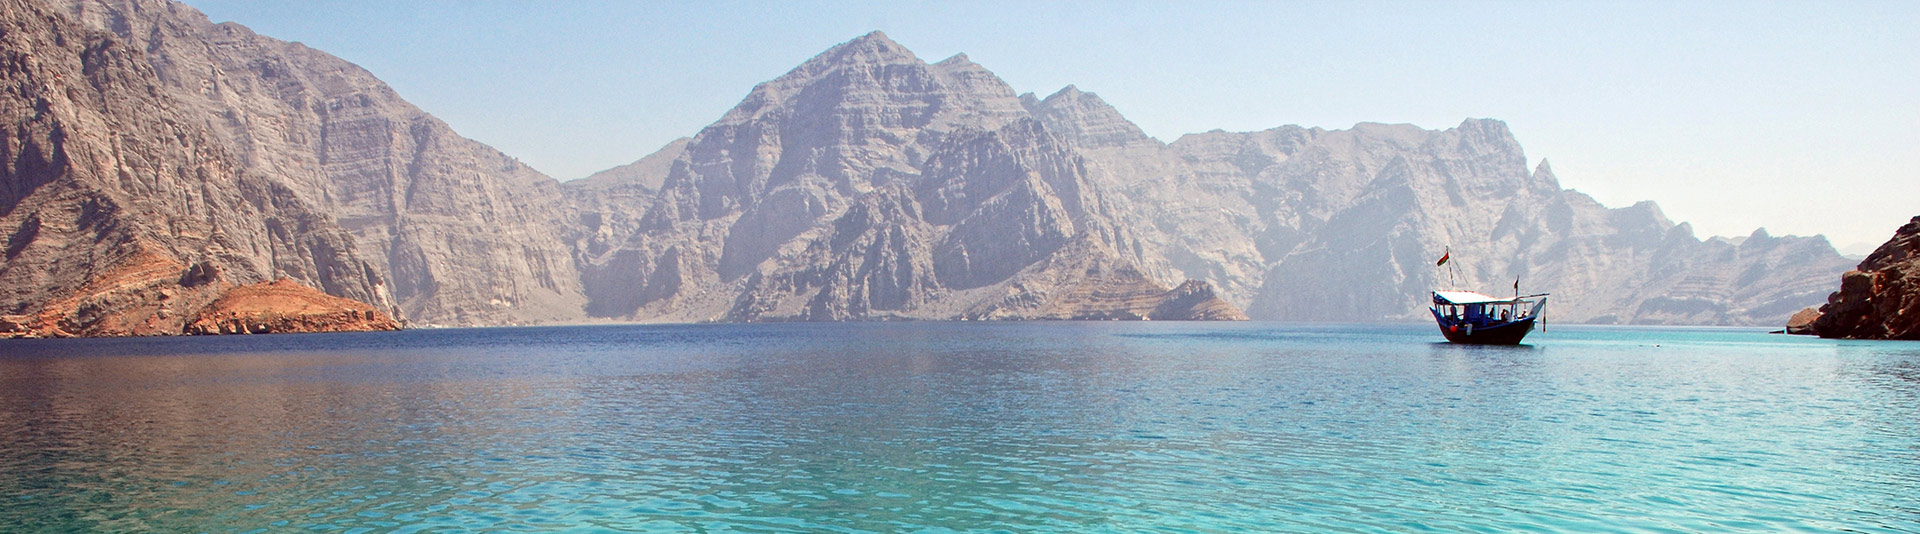 Rent a Yacht to Explore Oman